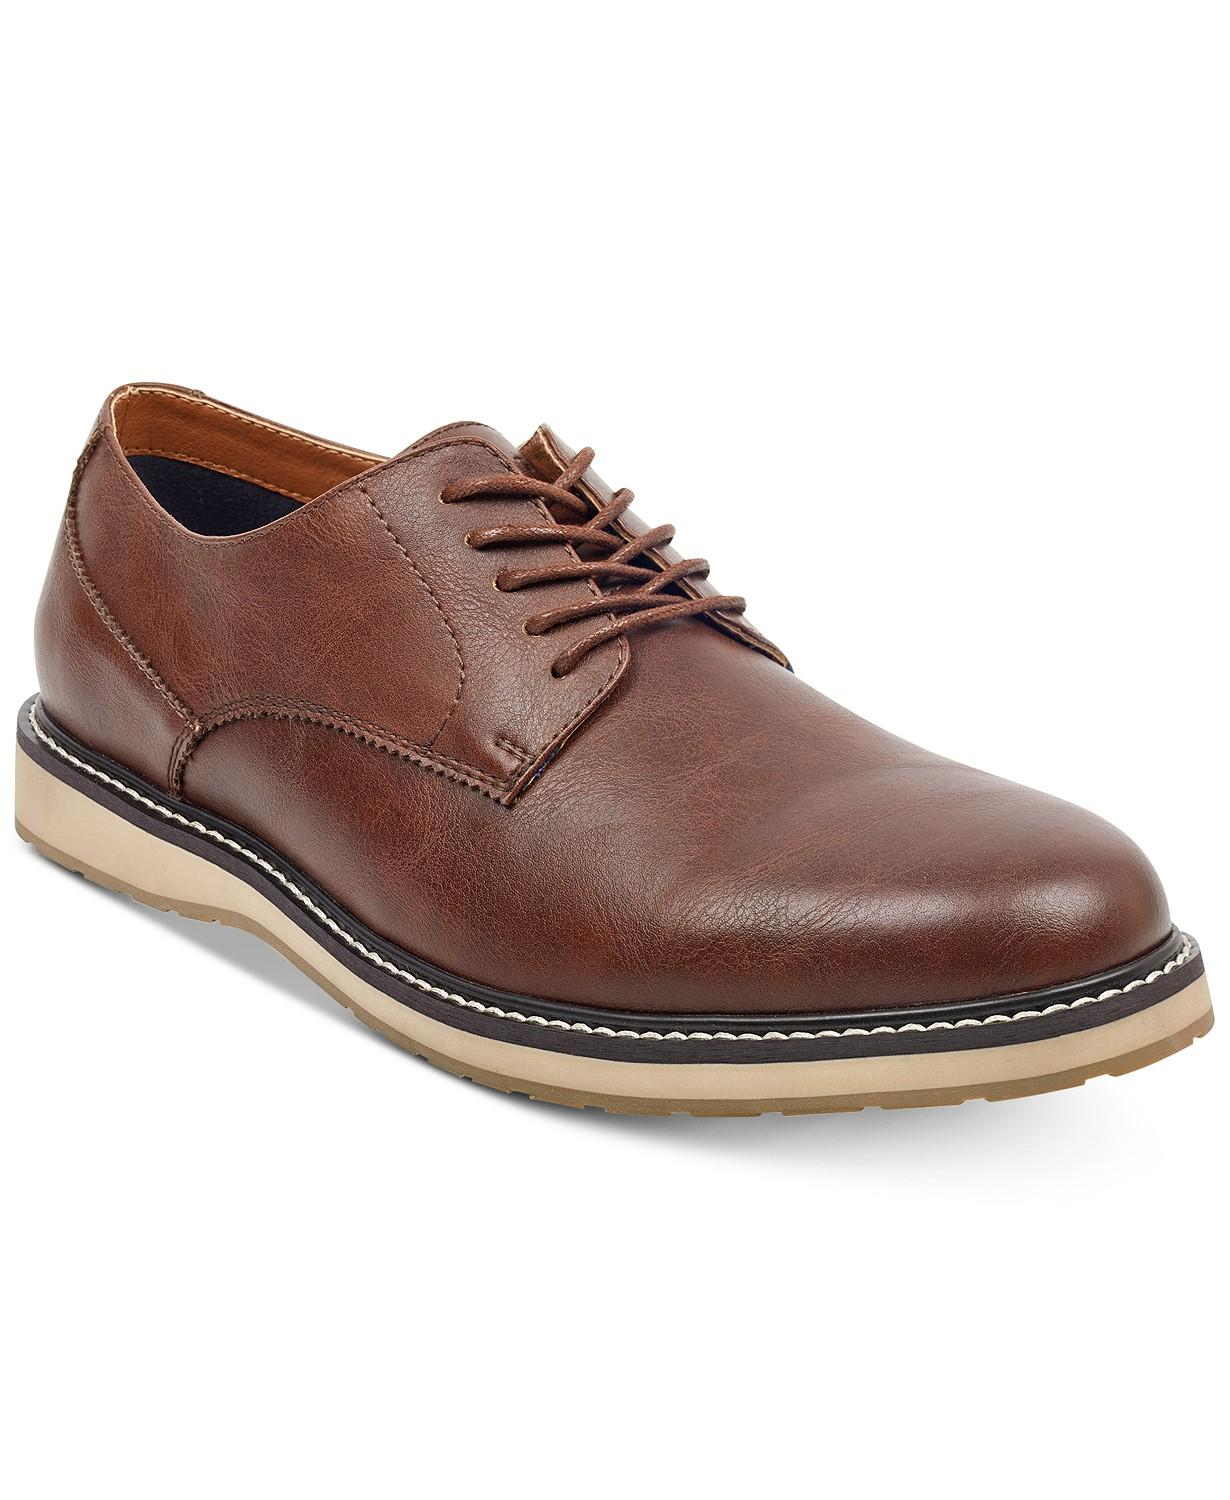 Tommy Hilfiger Men's Leslie Oxfords